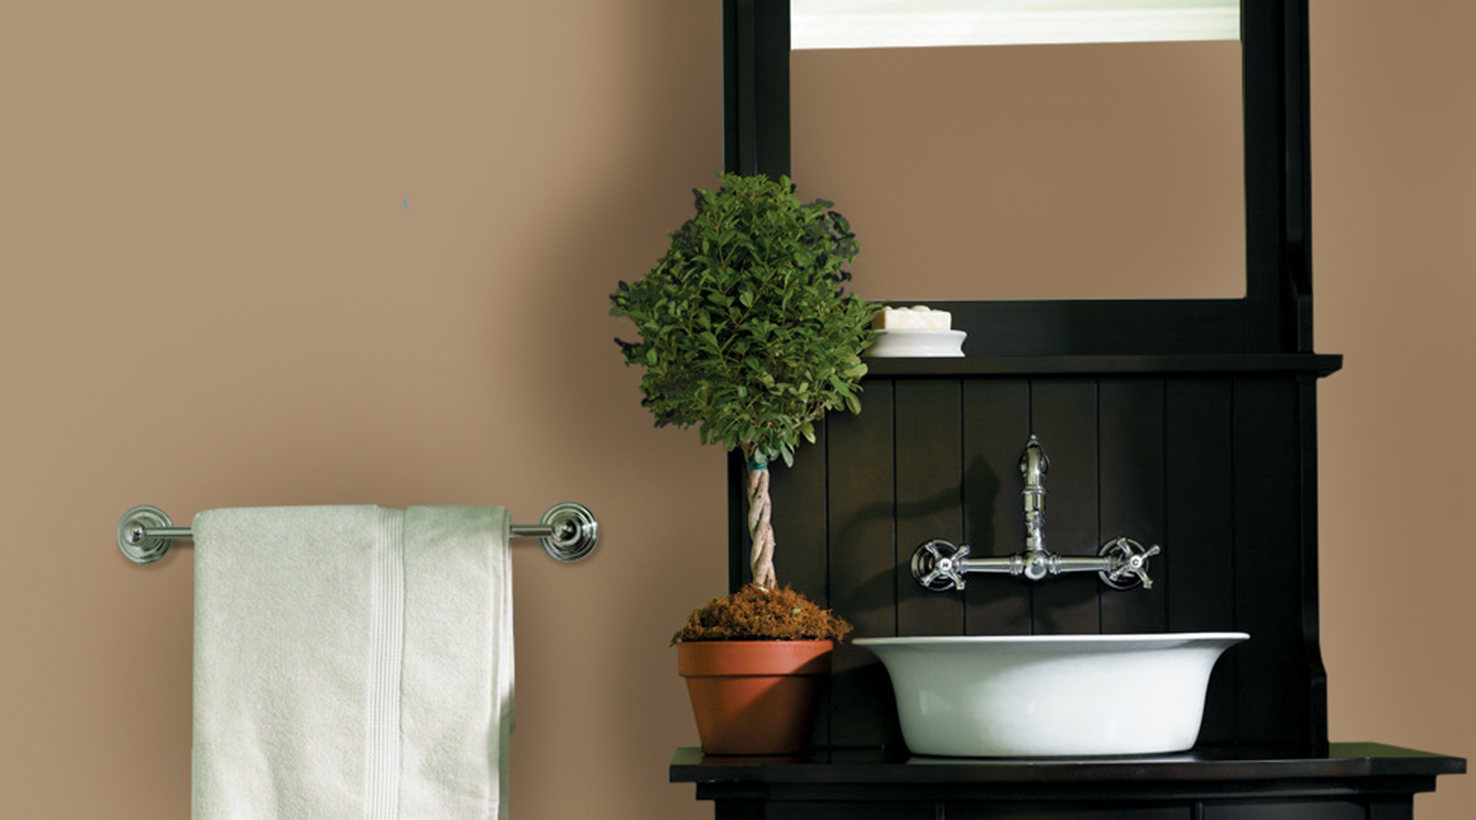 Bathroom Paint Color Ideas Inspiration Gallery Sherwin Williams,Christmas Gifts Ideas For Friends